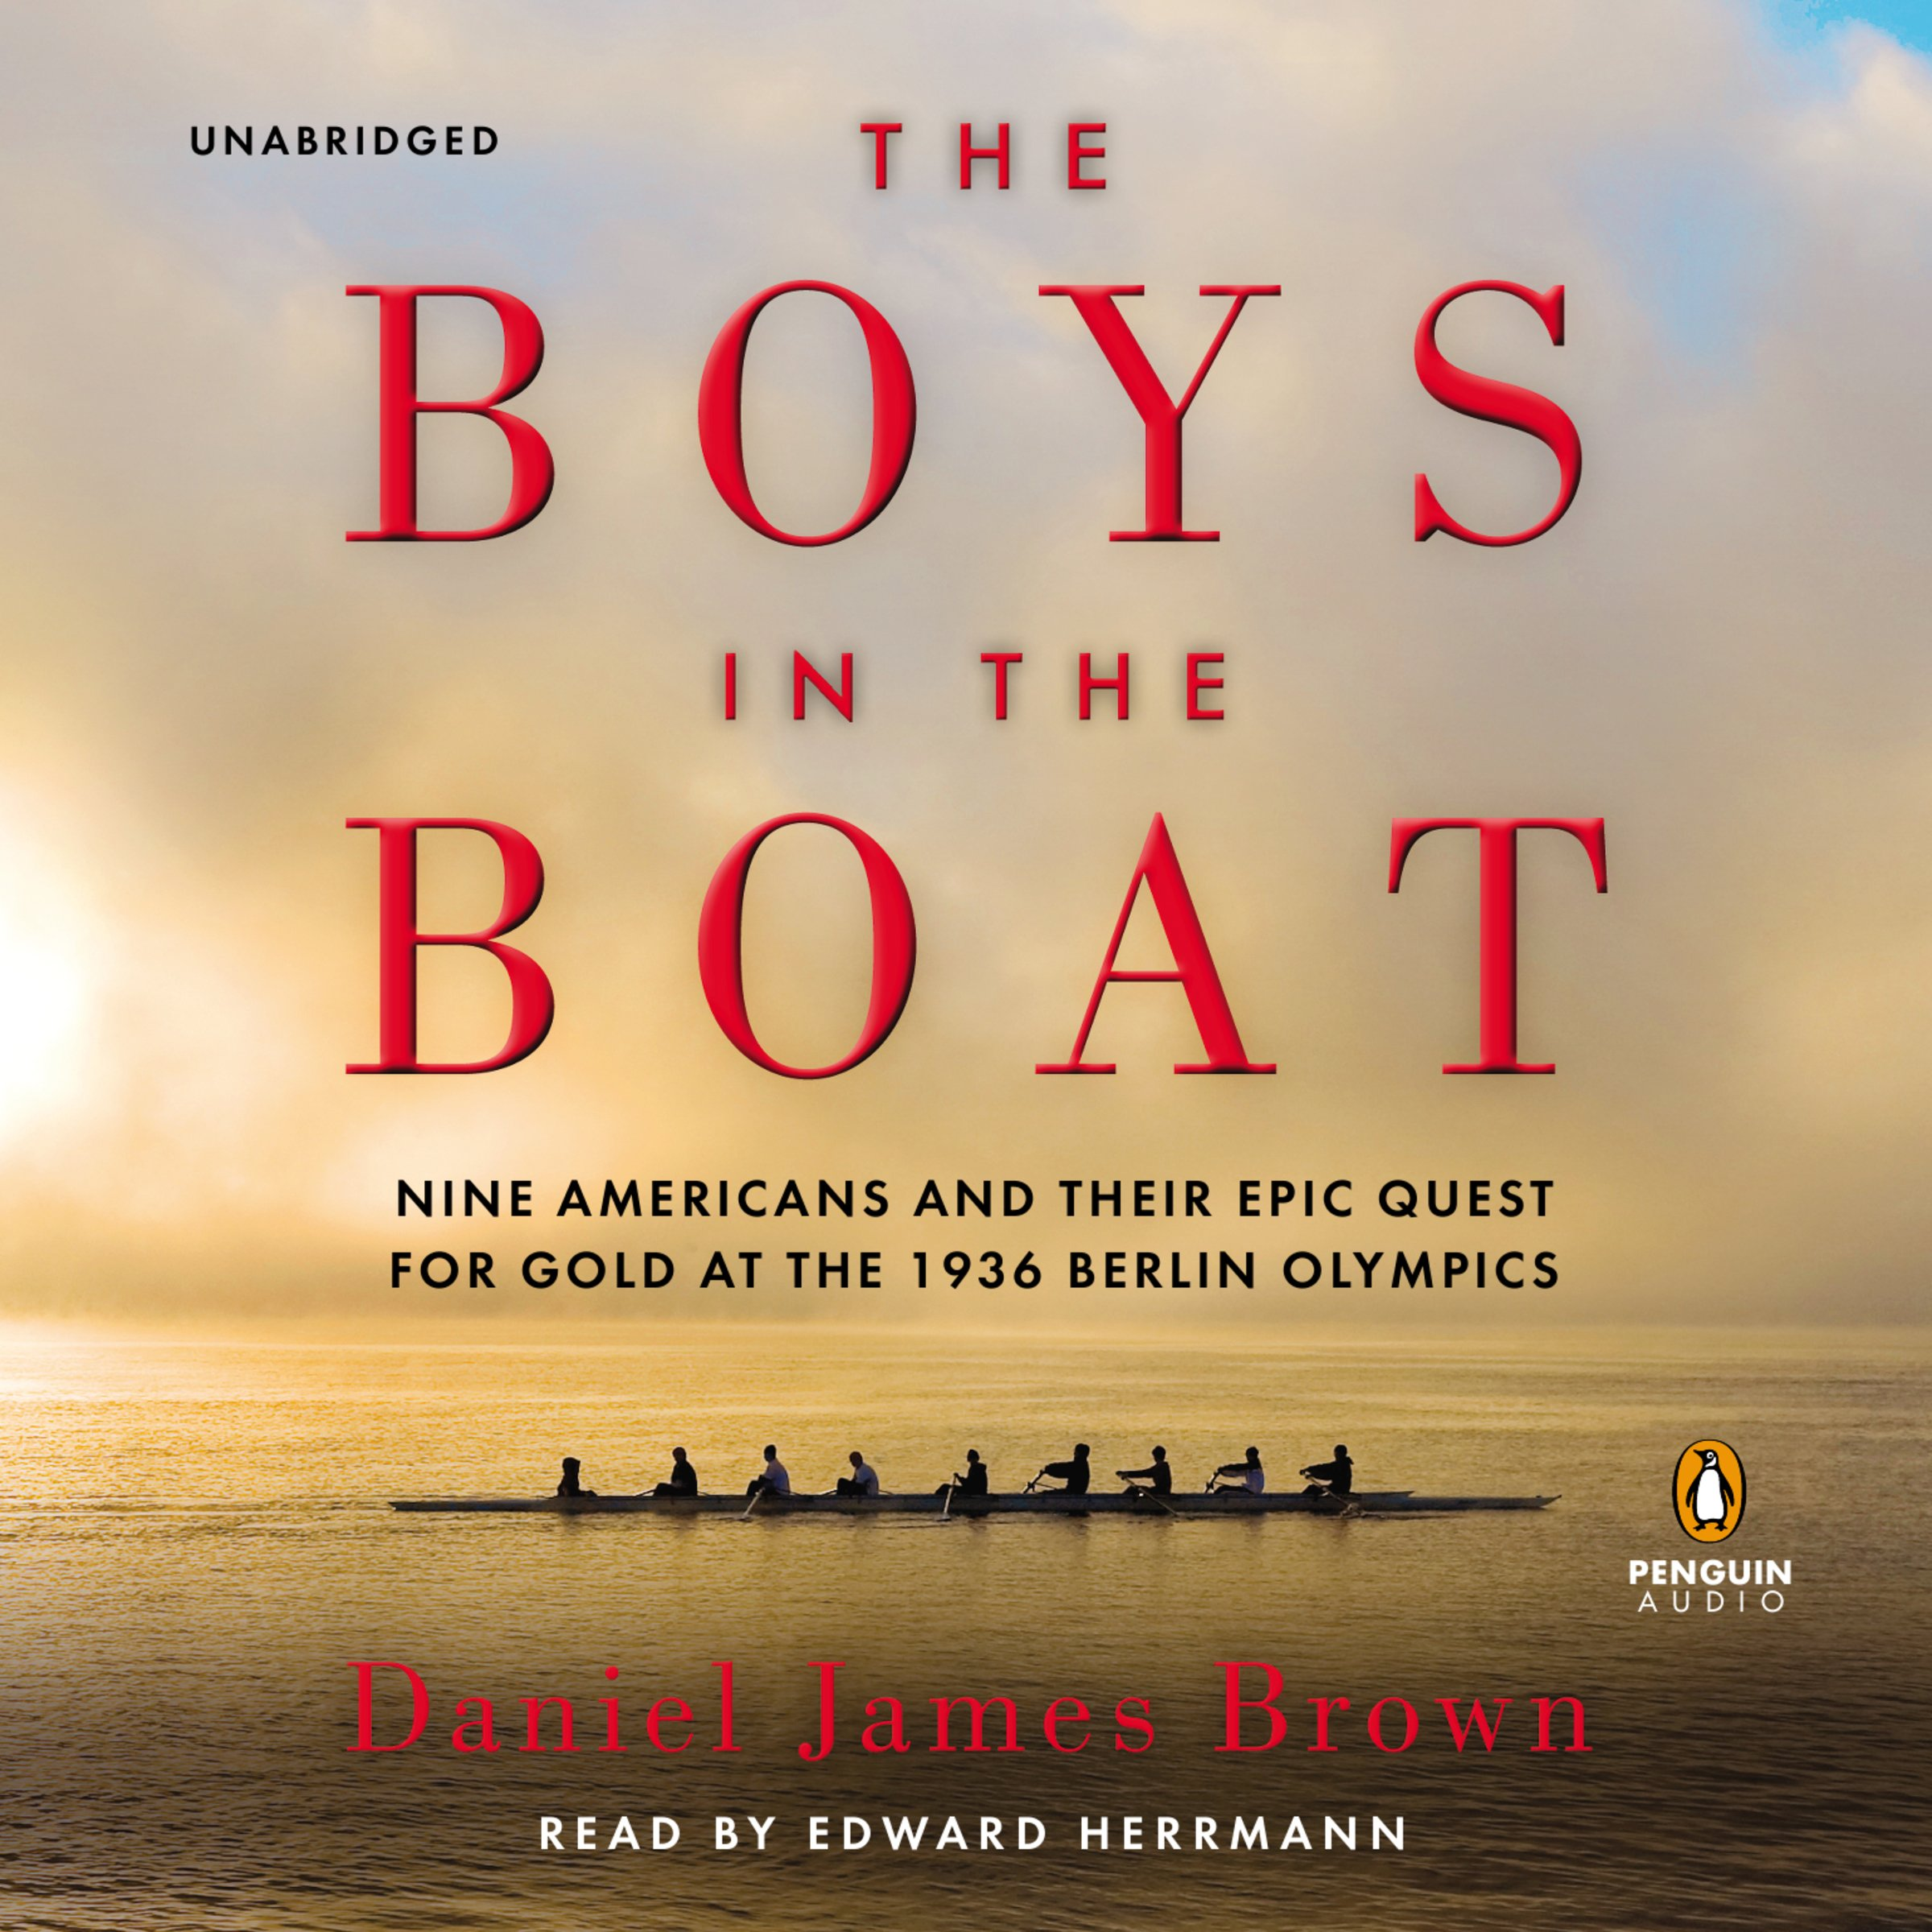 The Boys in the Boat: Nine Americans and Their Epic Quest for Gold at the 1936 Berlin Olympics by Penguin Audio